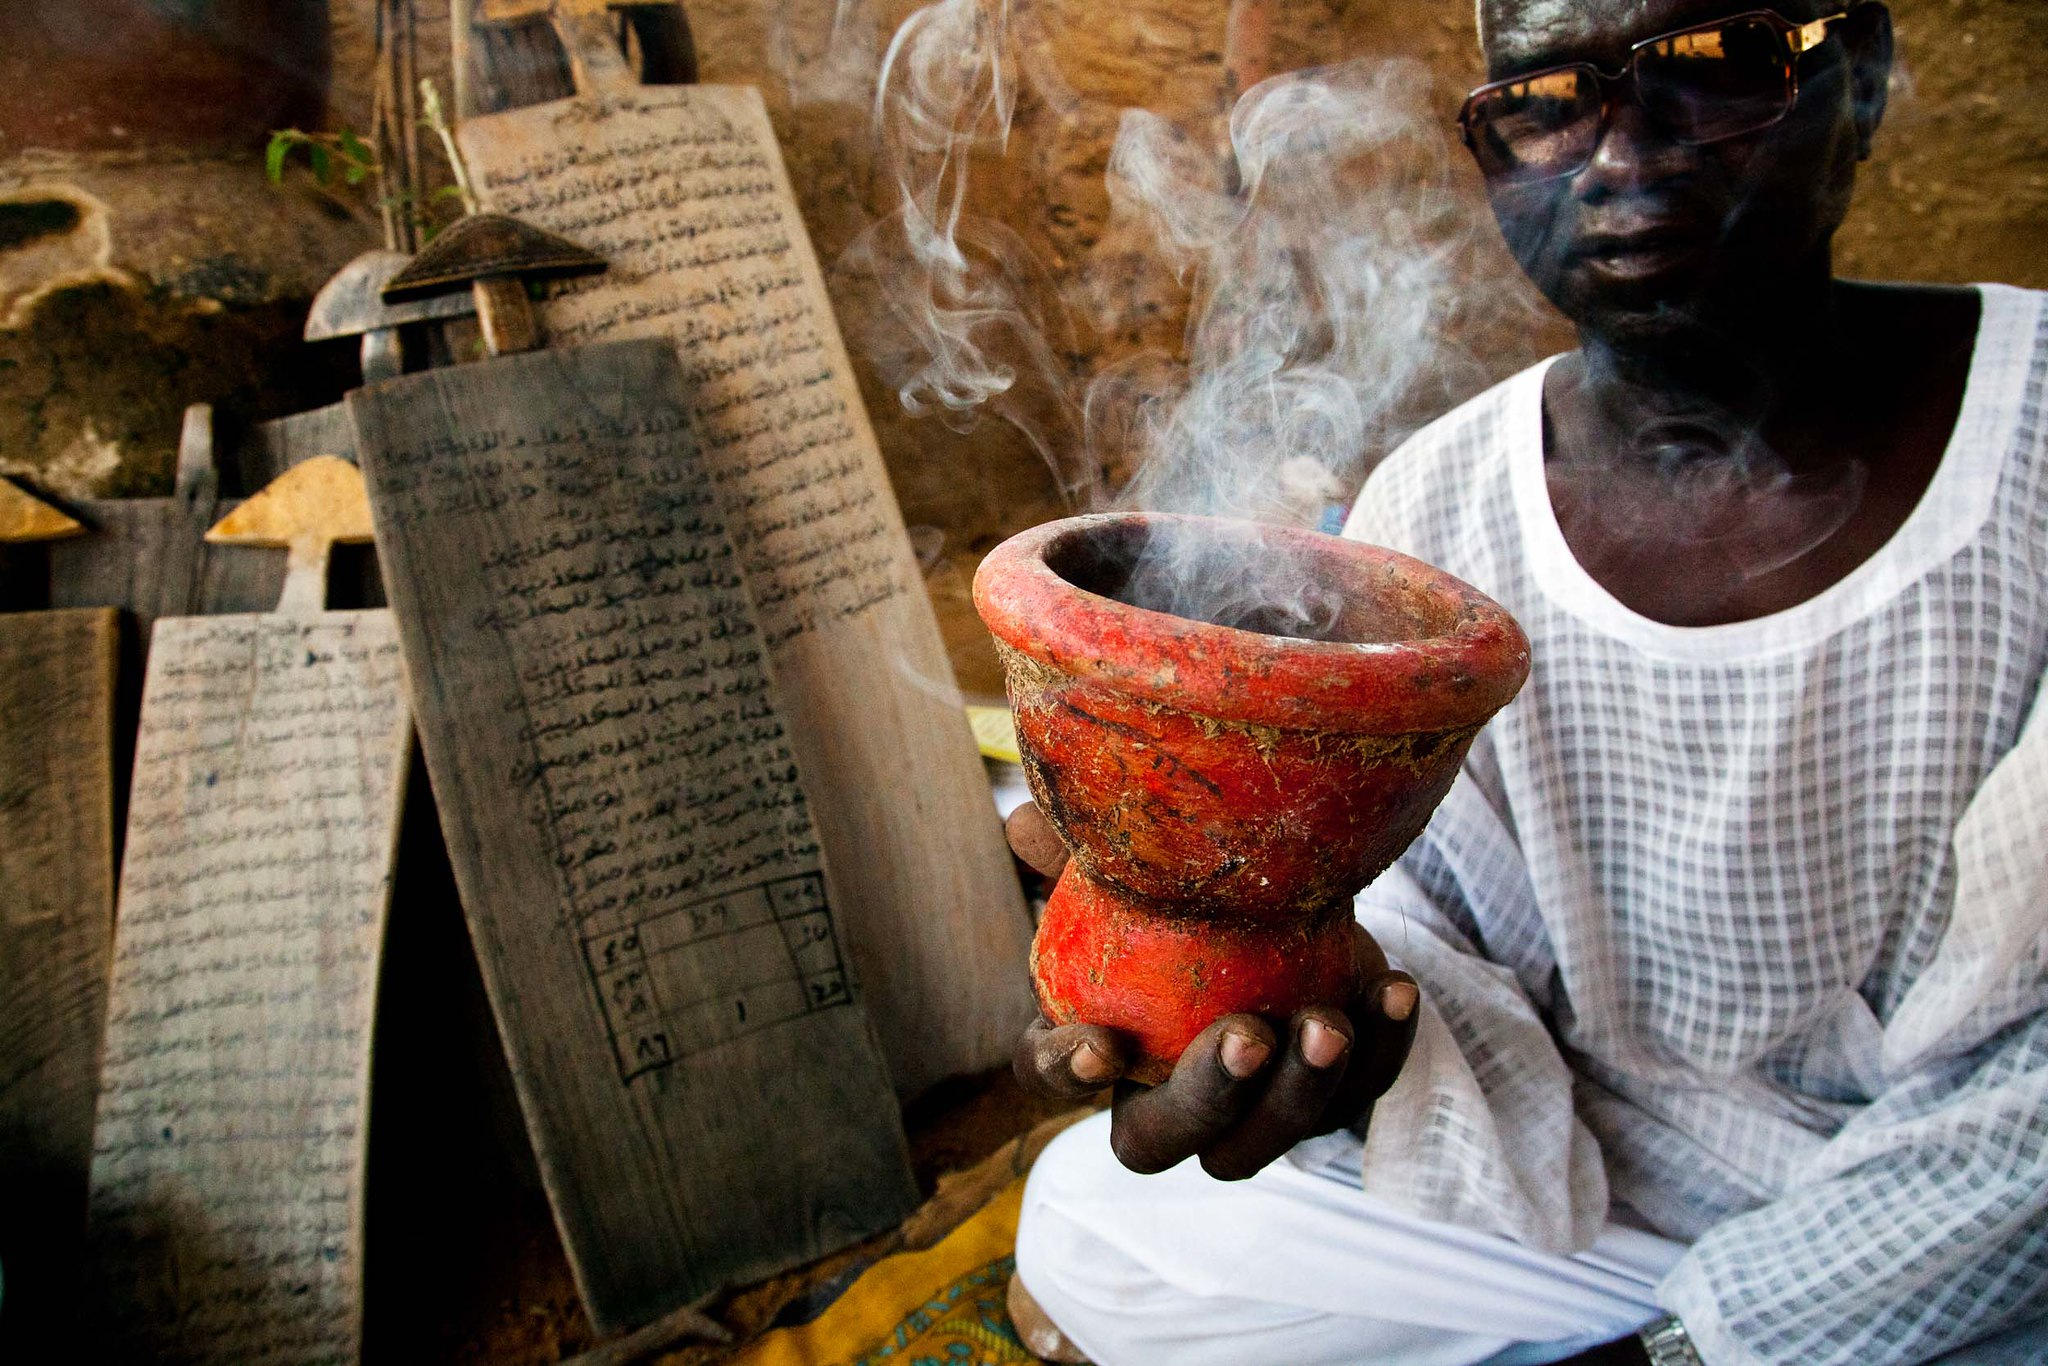 Witch doctors sacrifice kids; Set Free offers protection and hope